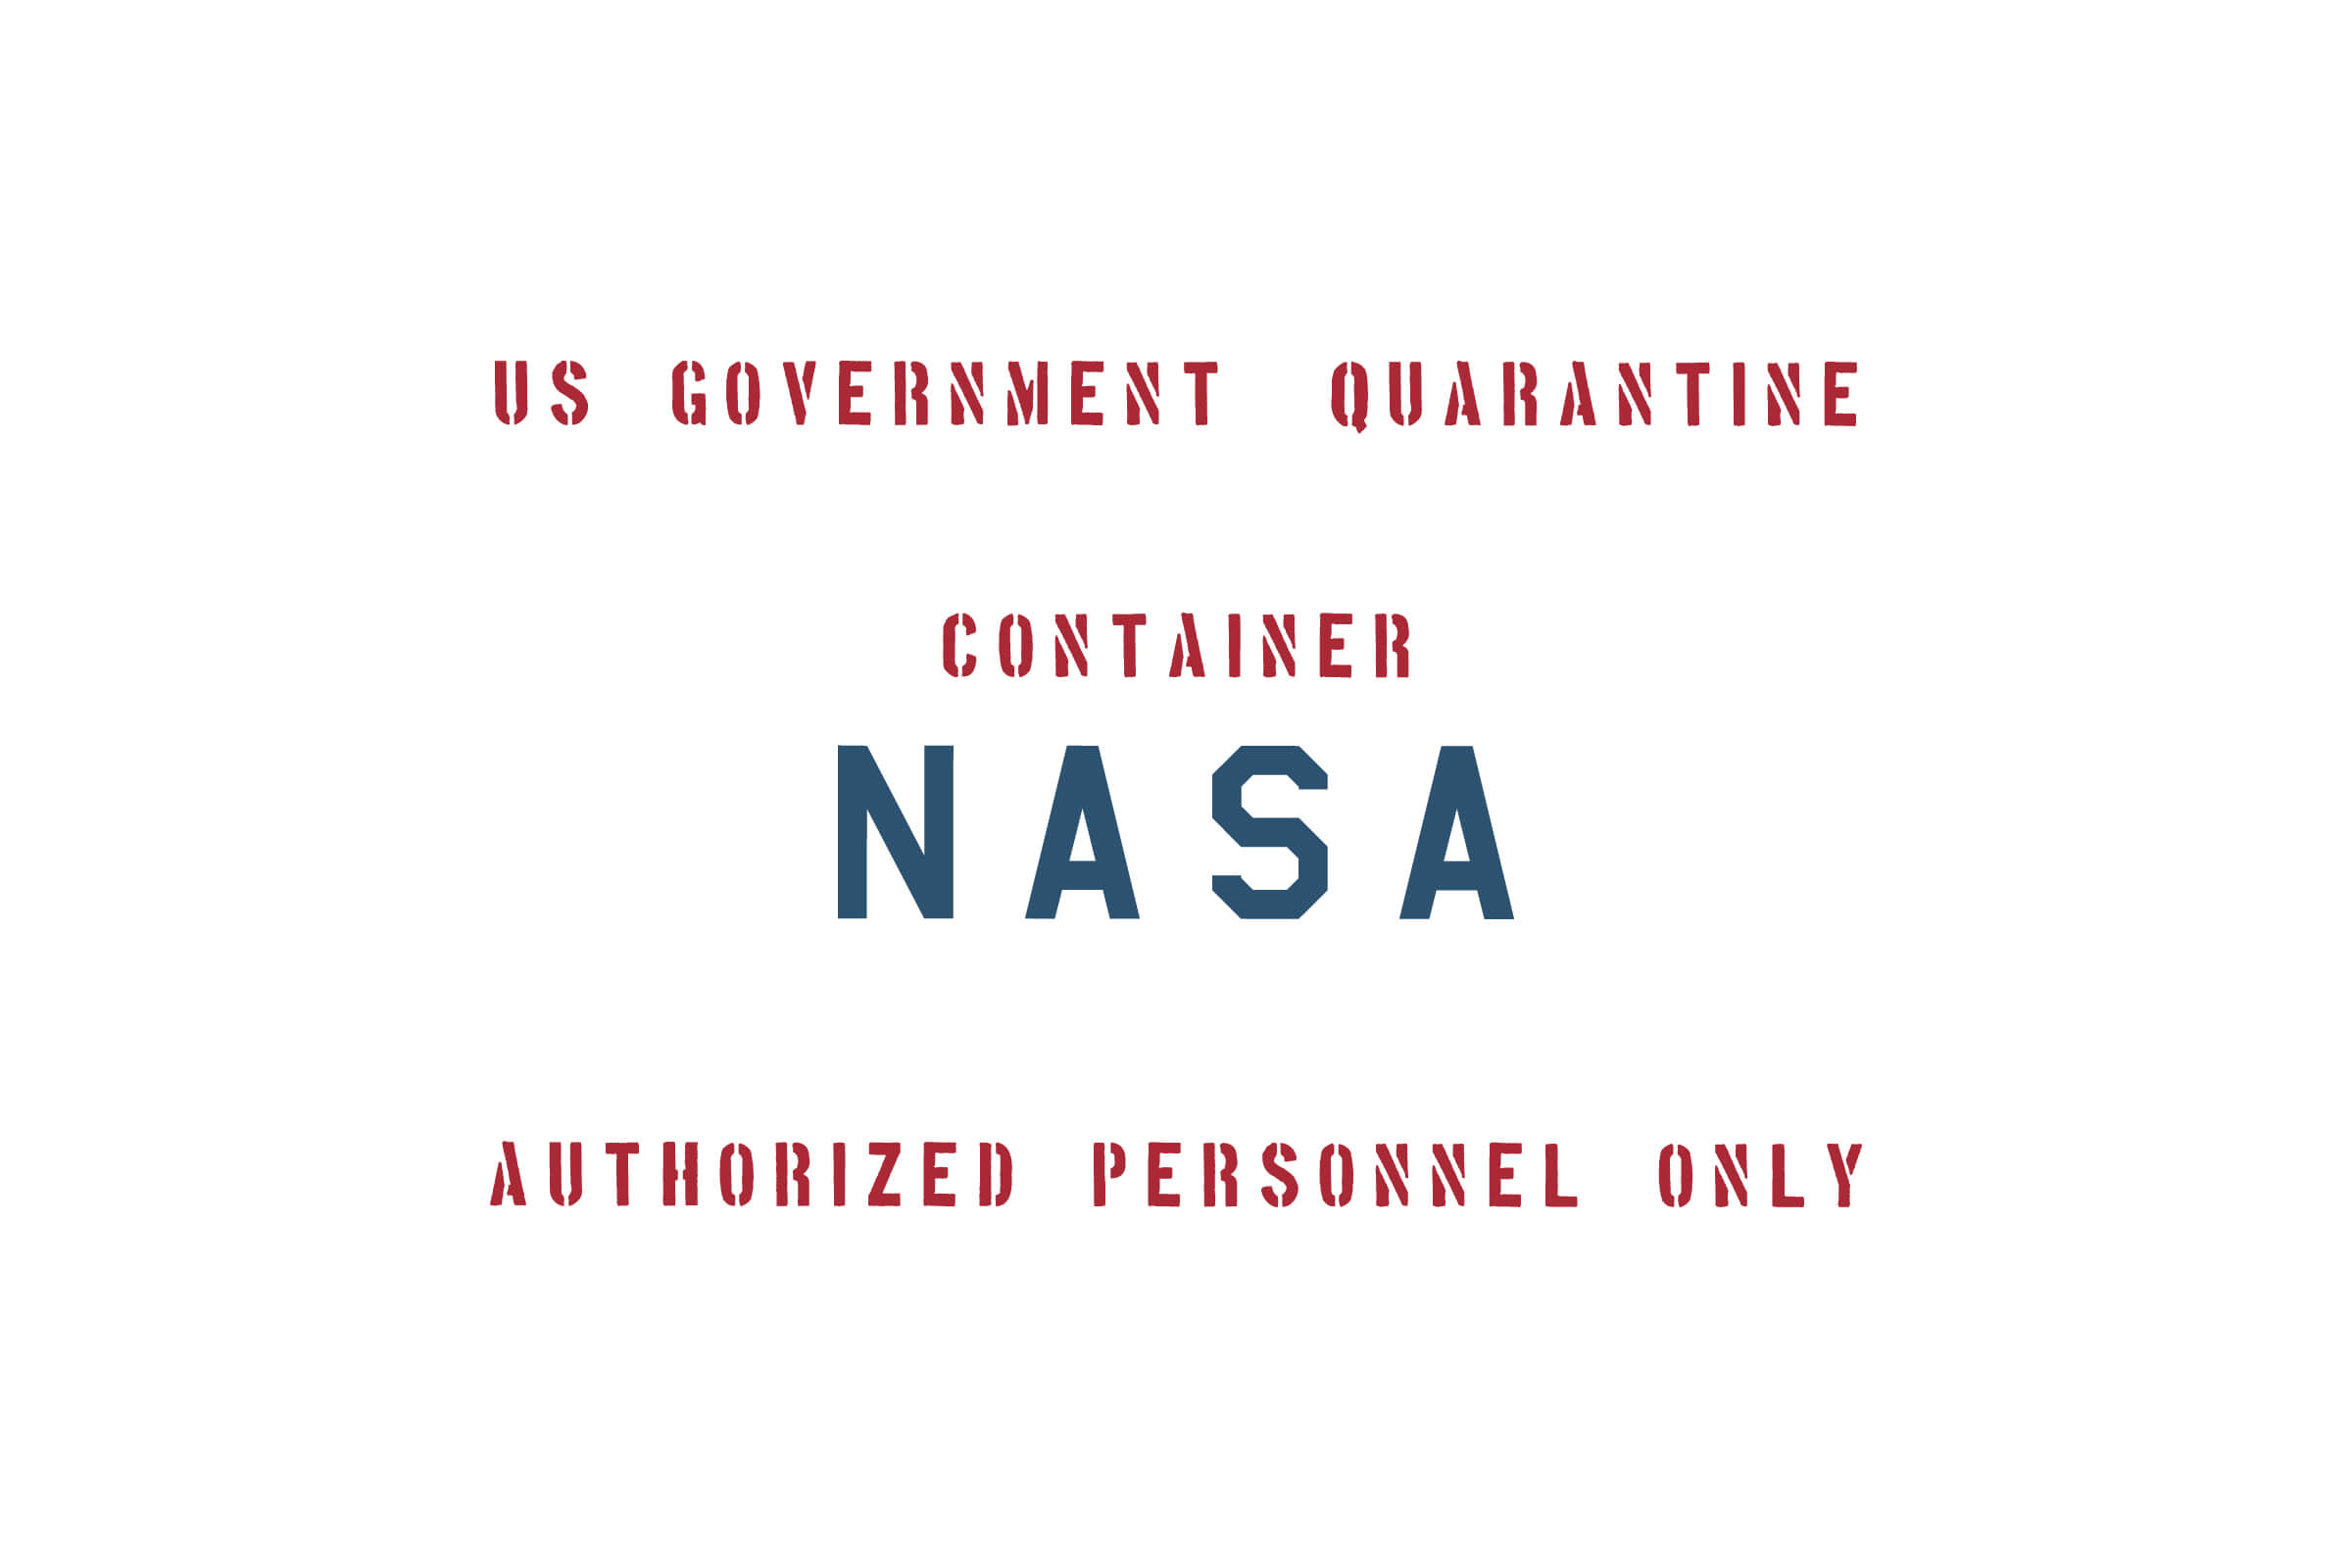 nasa-quarantine